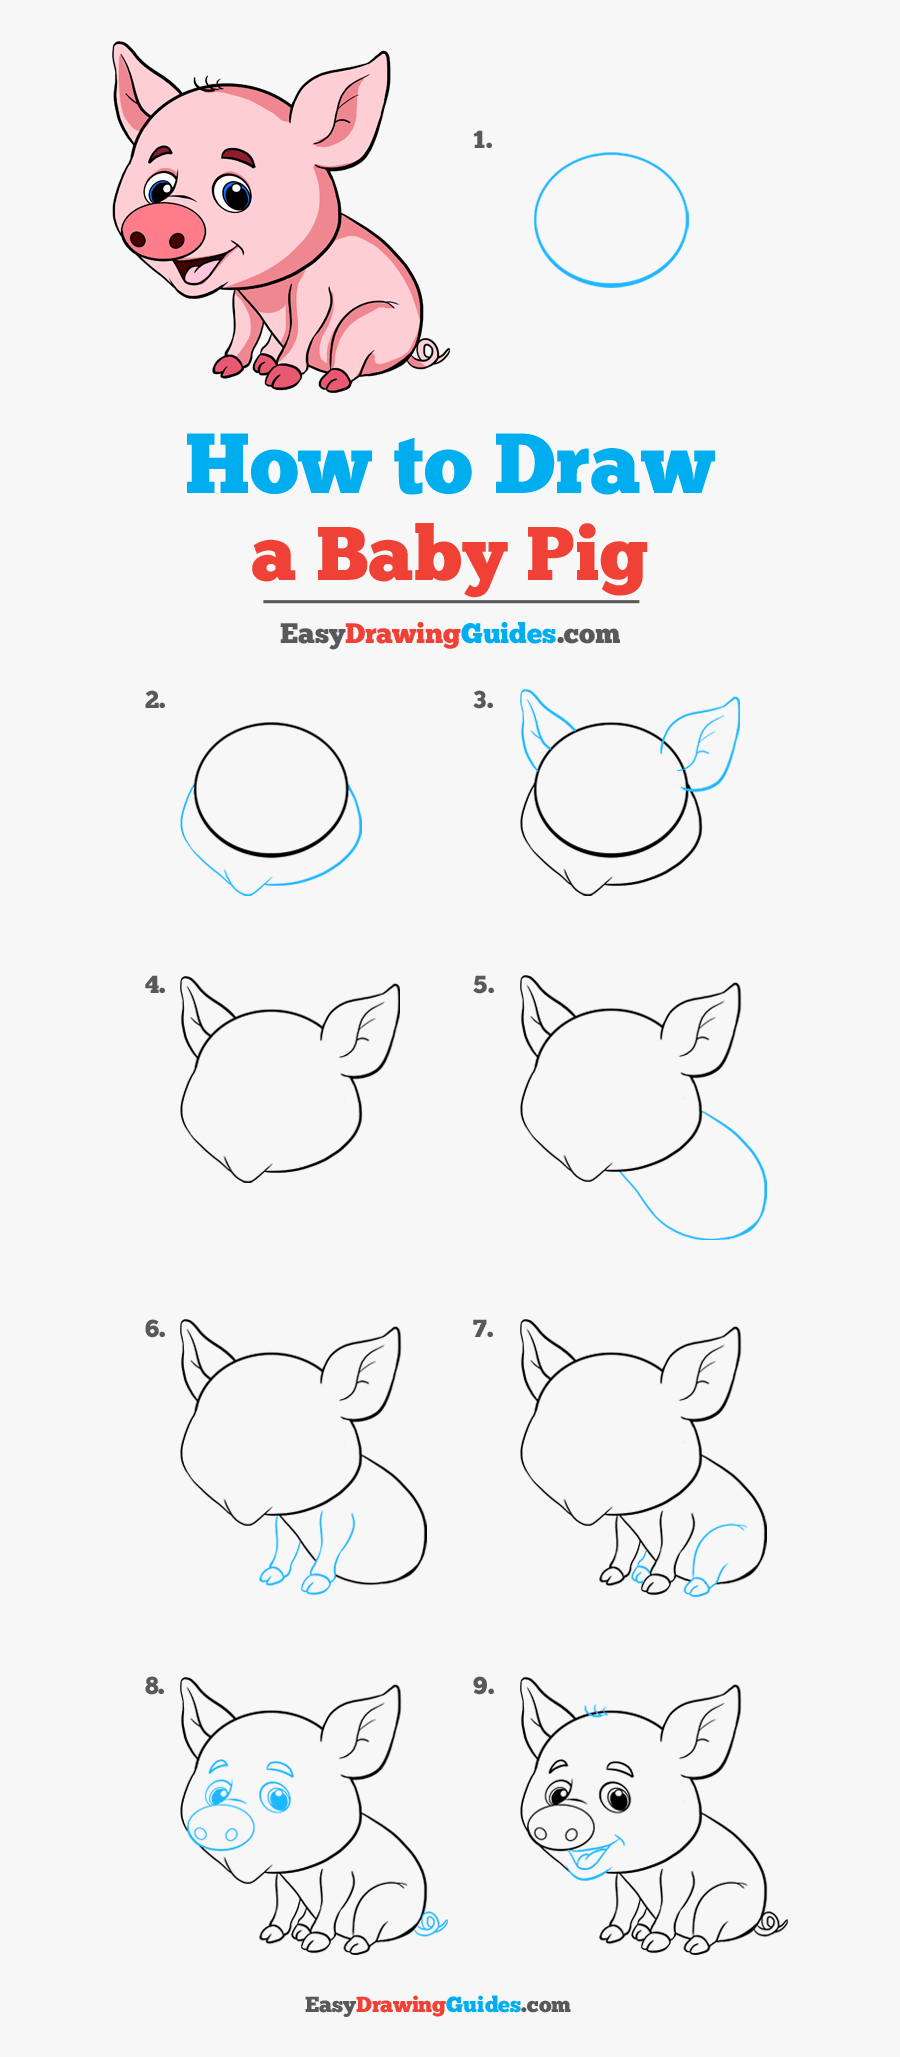 How To Draw Baby Pig - Step By Step Pig Drawing Easy, Transparent Clipart